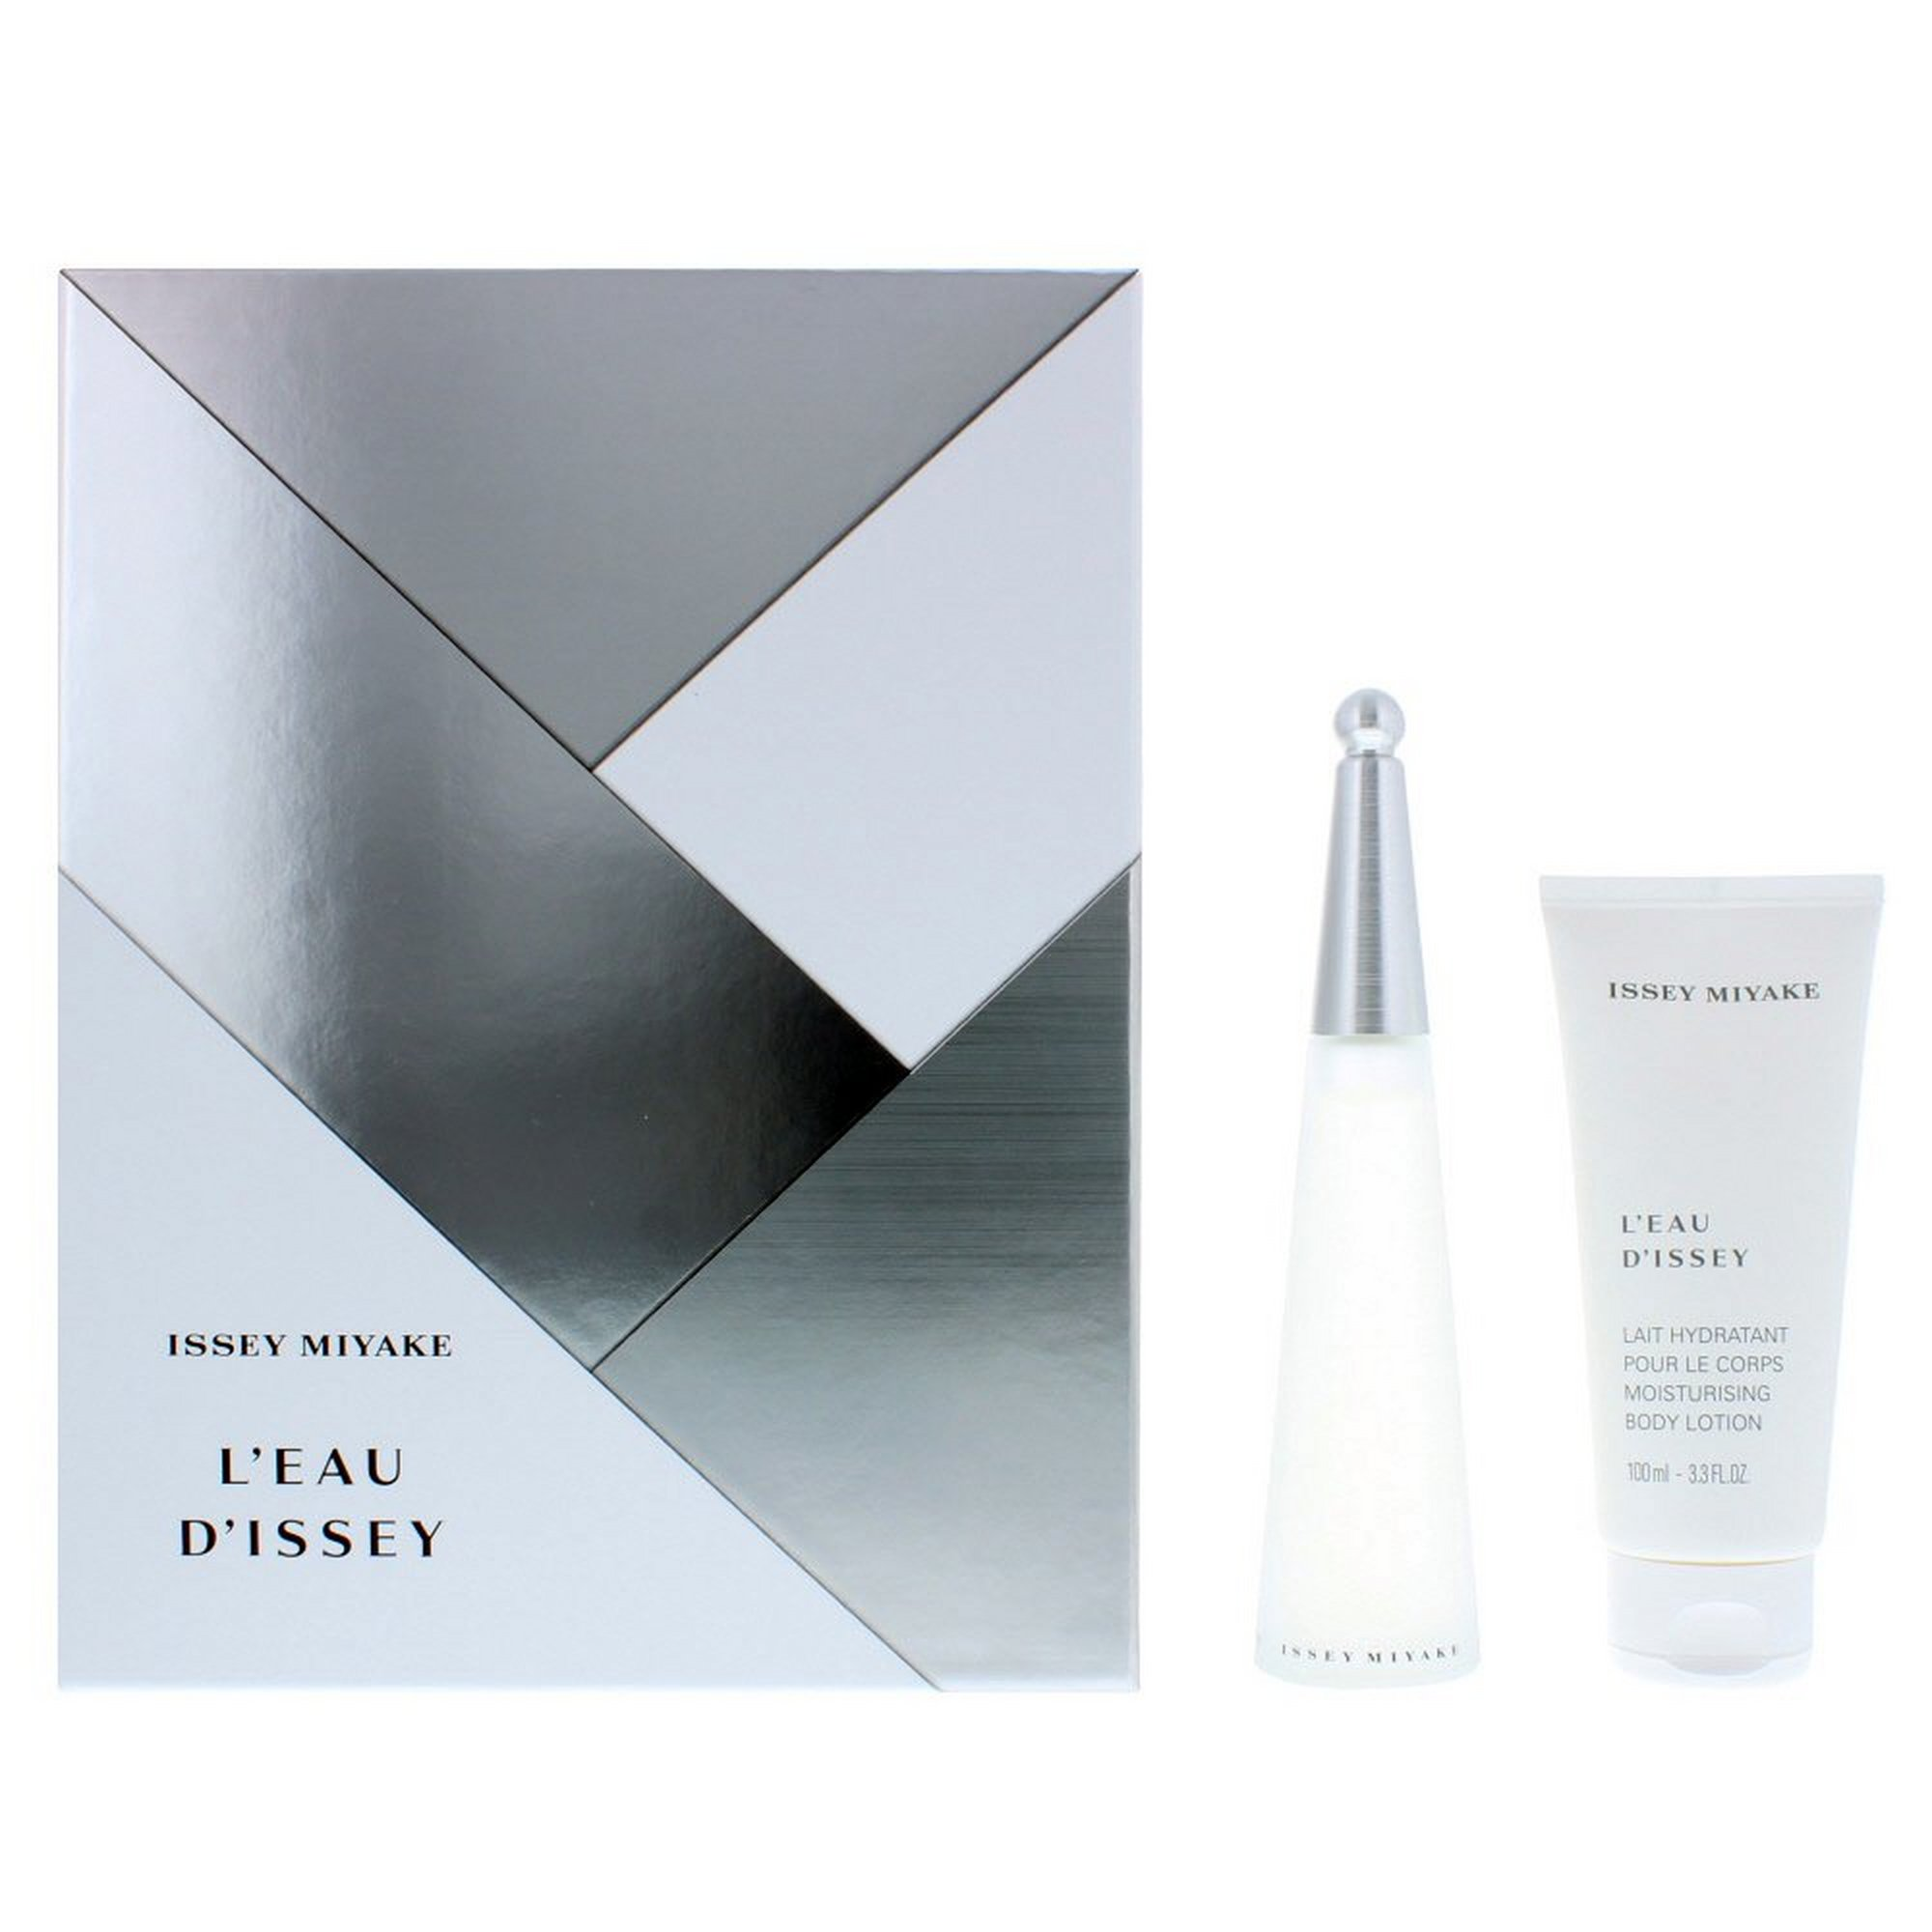 Image of Issey Miyake Leau Dissey 50ml EDT + Body Lotion Gift Set